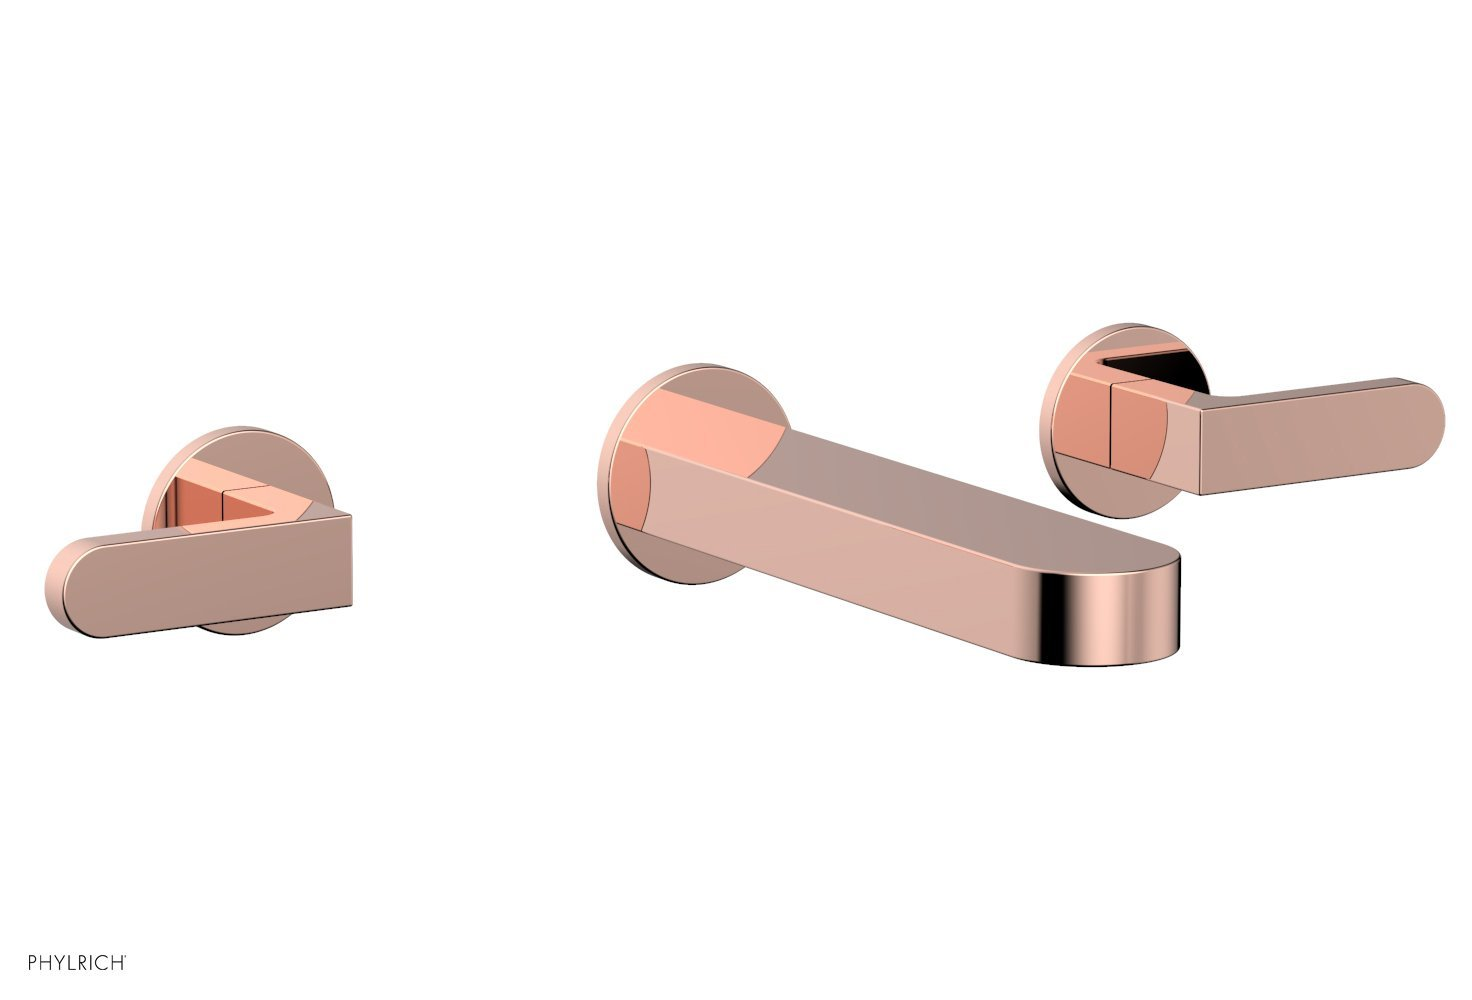 Phylrich 183-12-005 ROND Wall Lavatory Set - Lever Handles - Polished Copper